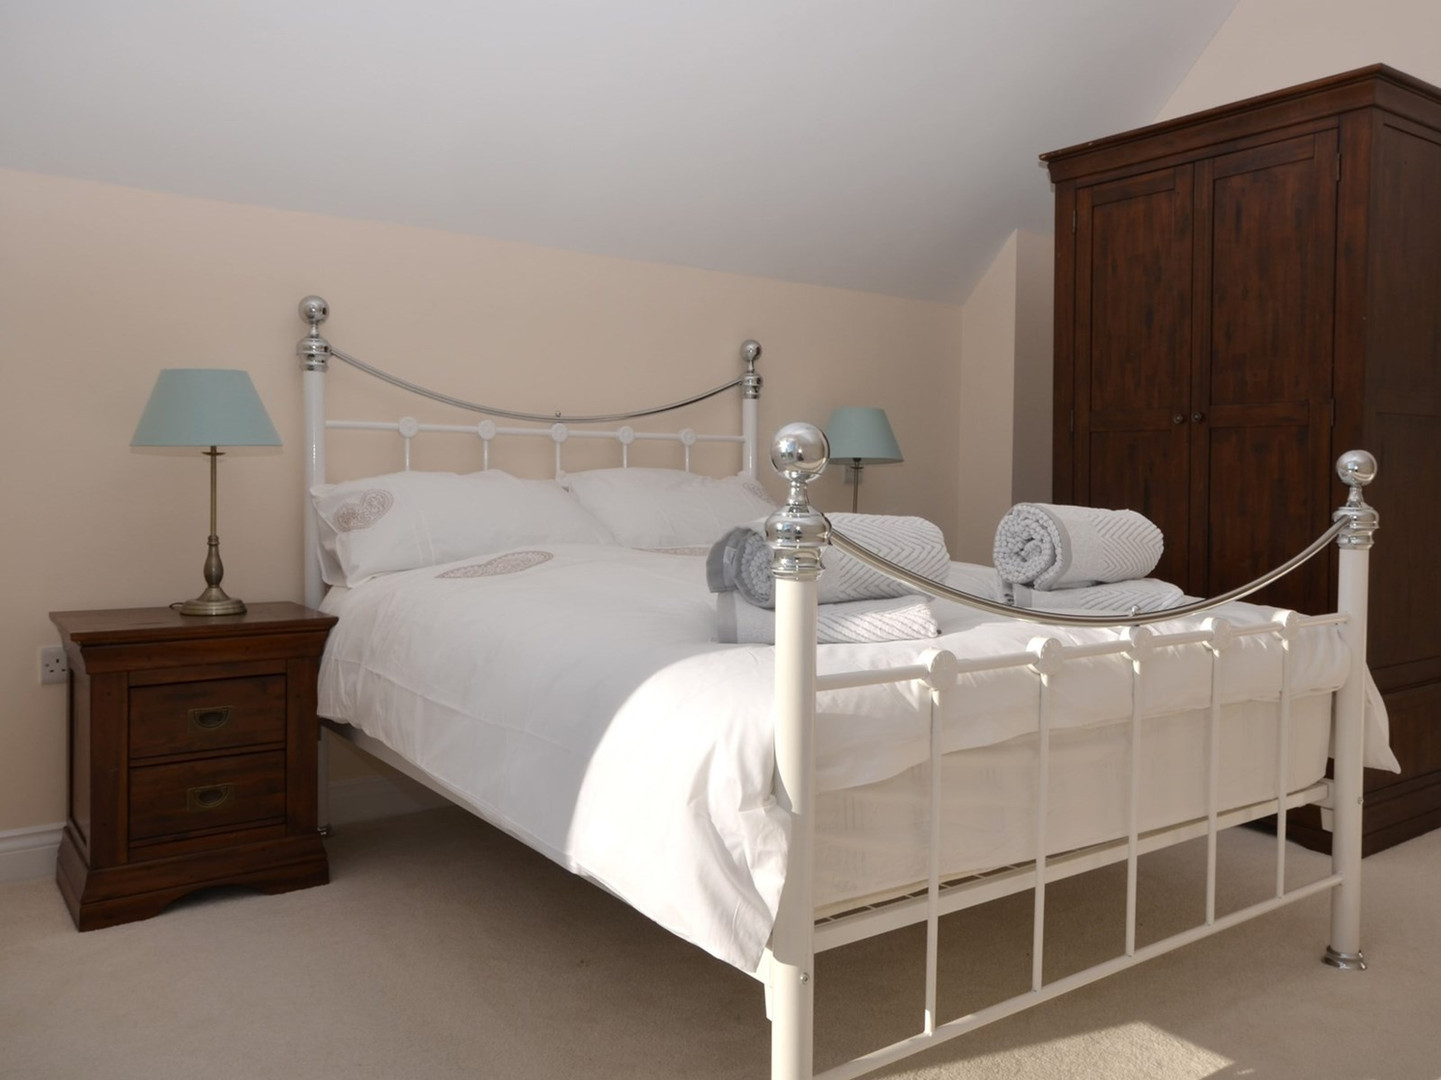 Birch View at Meare -Double bedroom.jpeg